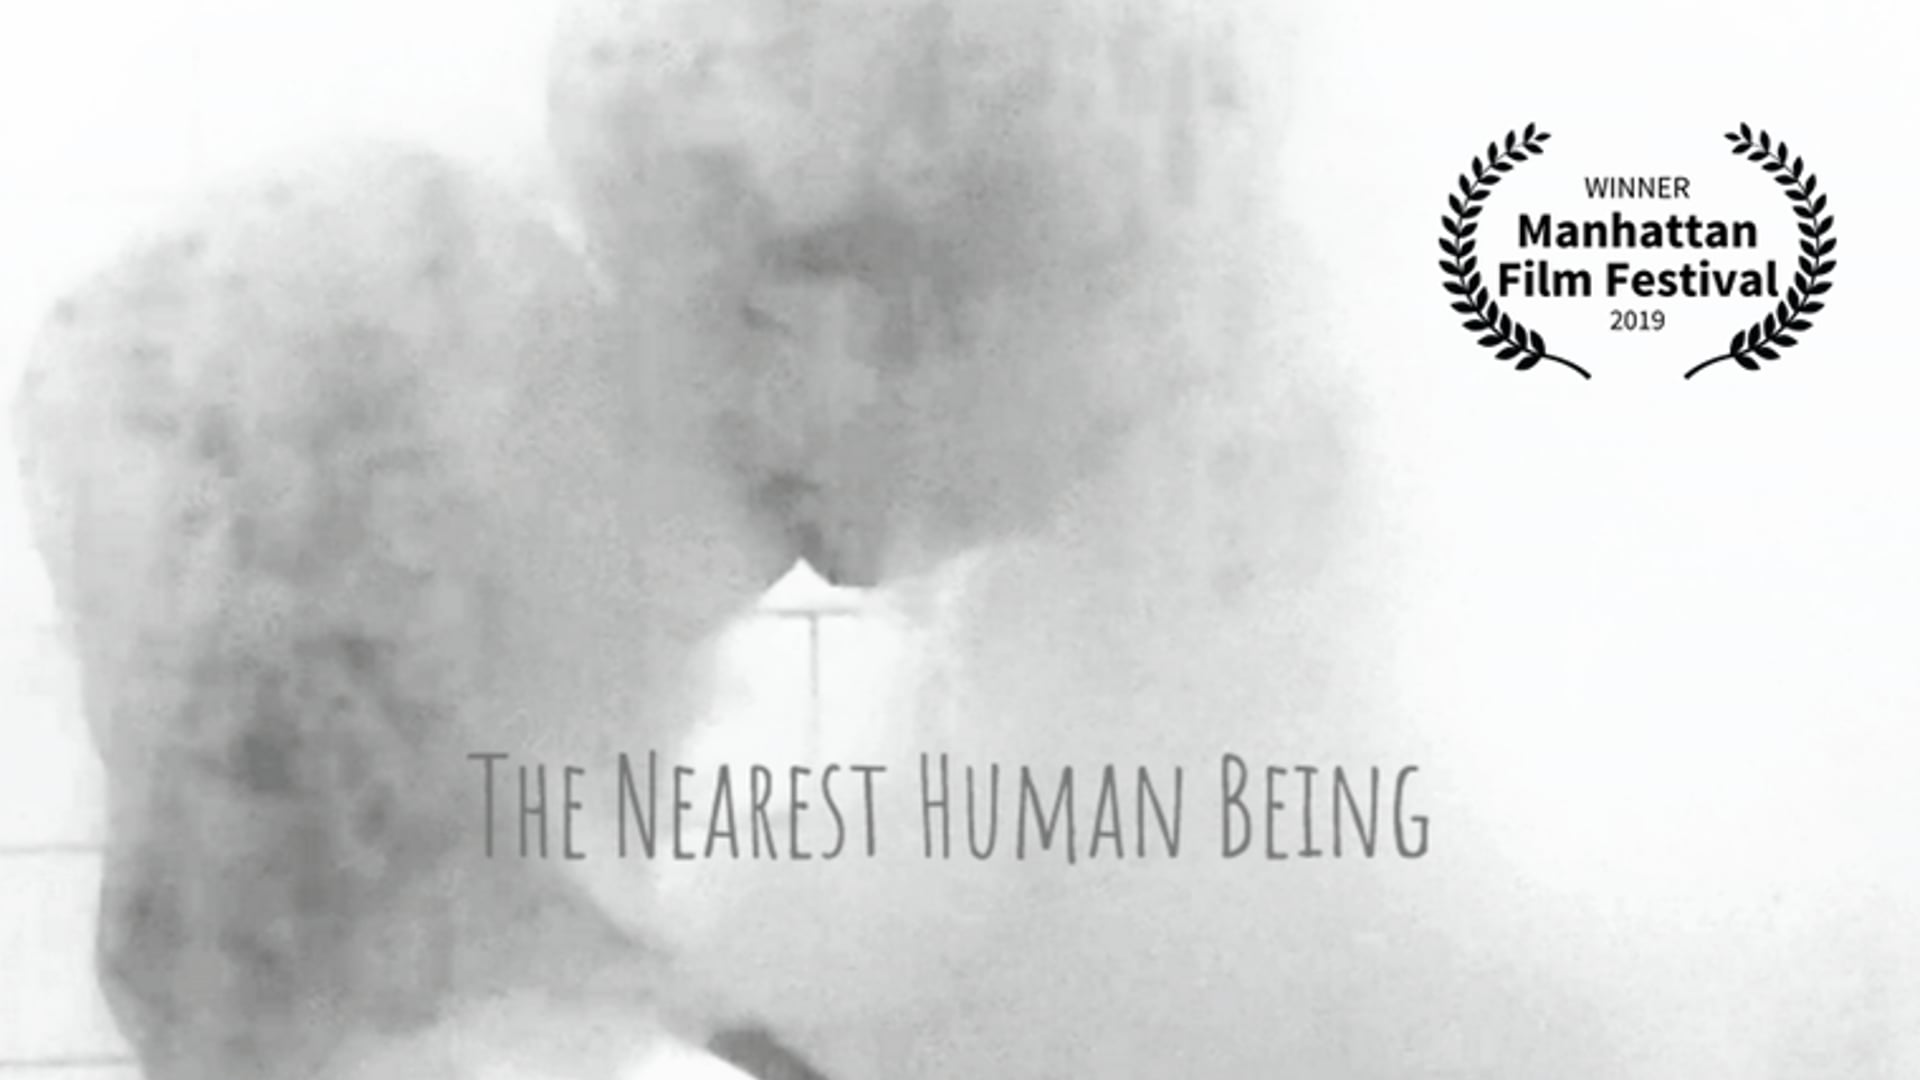 The Nearest Human Being - Official Trailer